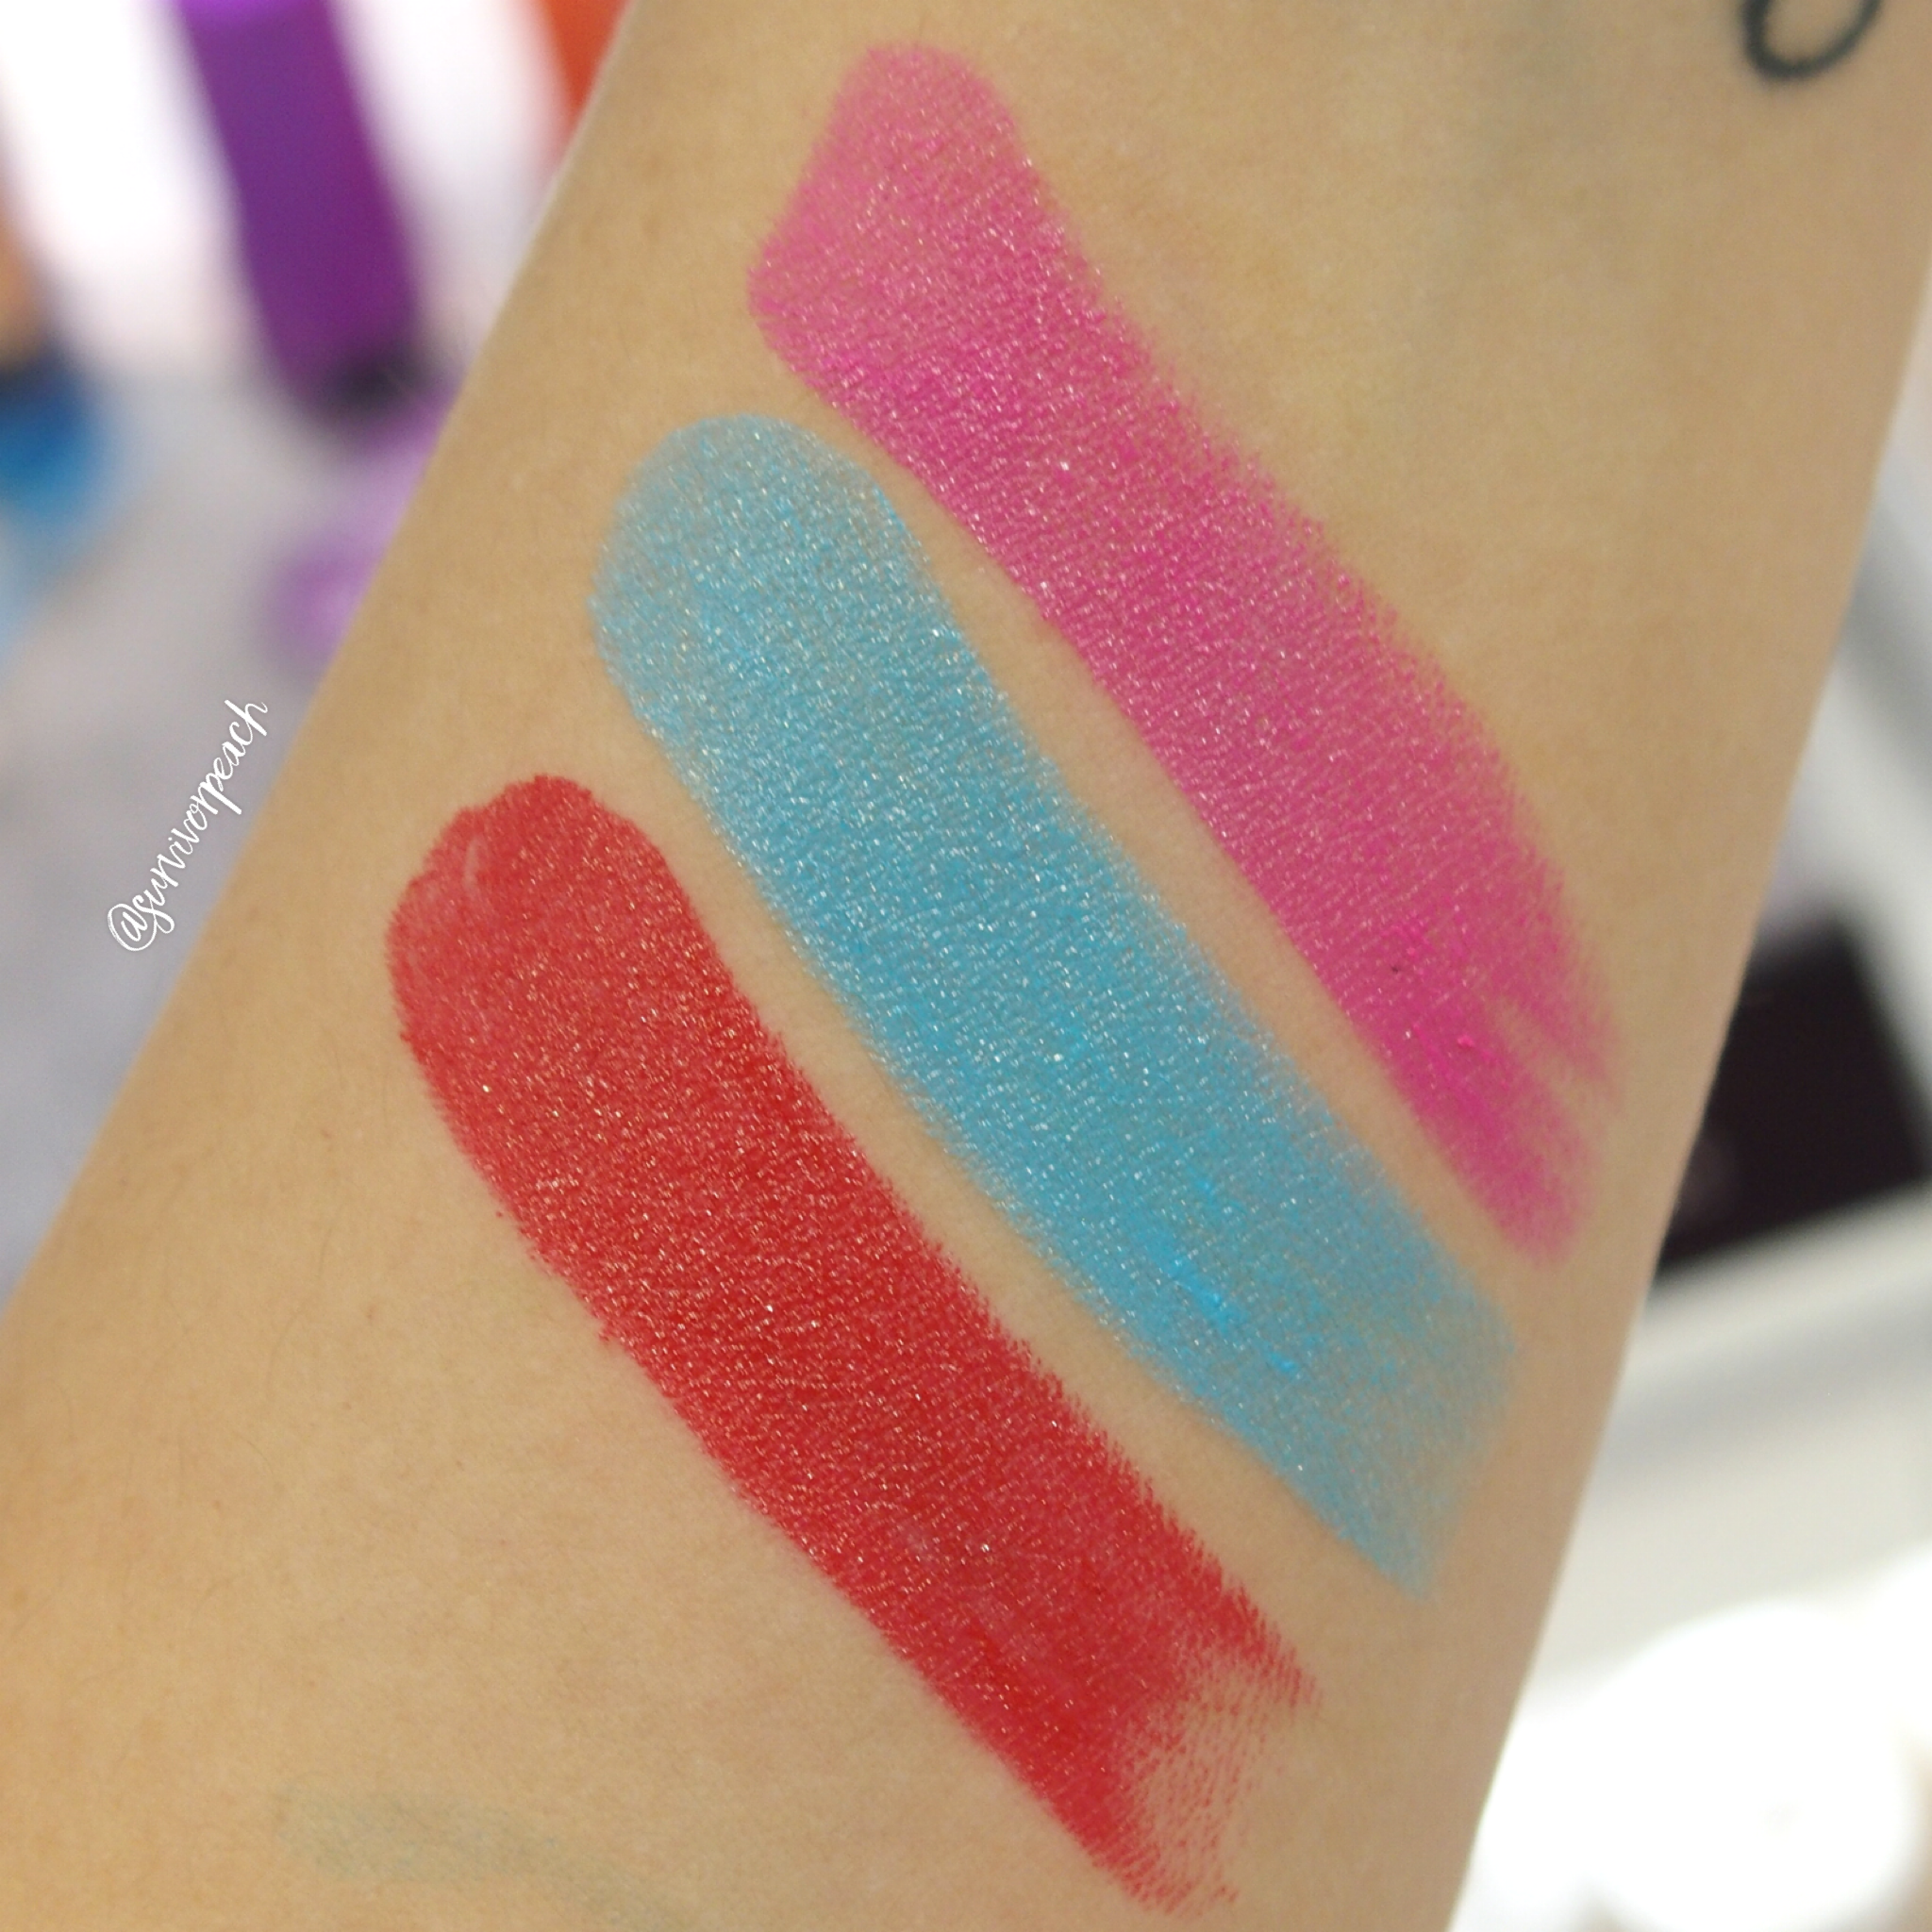 Swatches of the Fenty Beauty Poutisicle - Tropic Tantrum, Motorboat, Hot Blooded